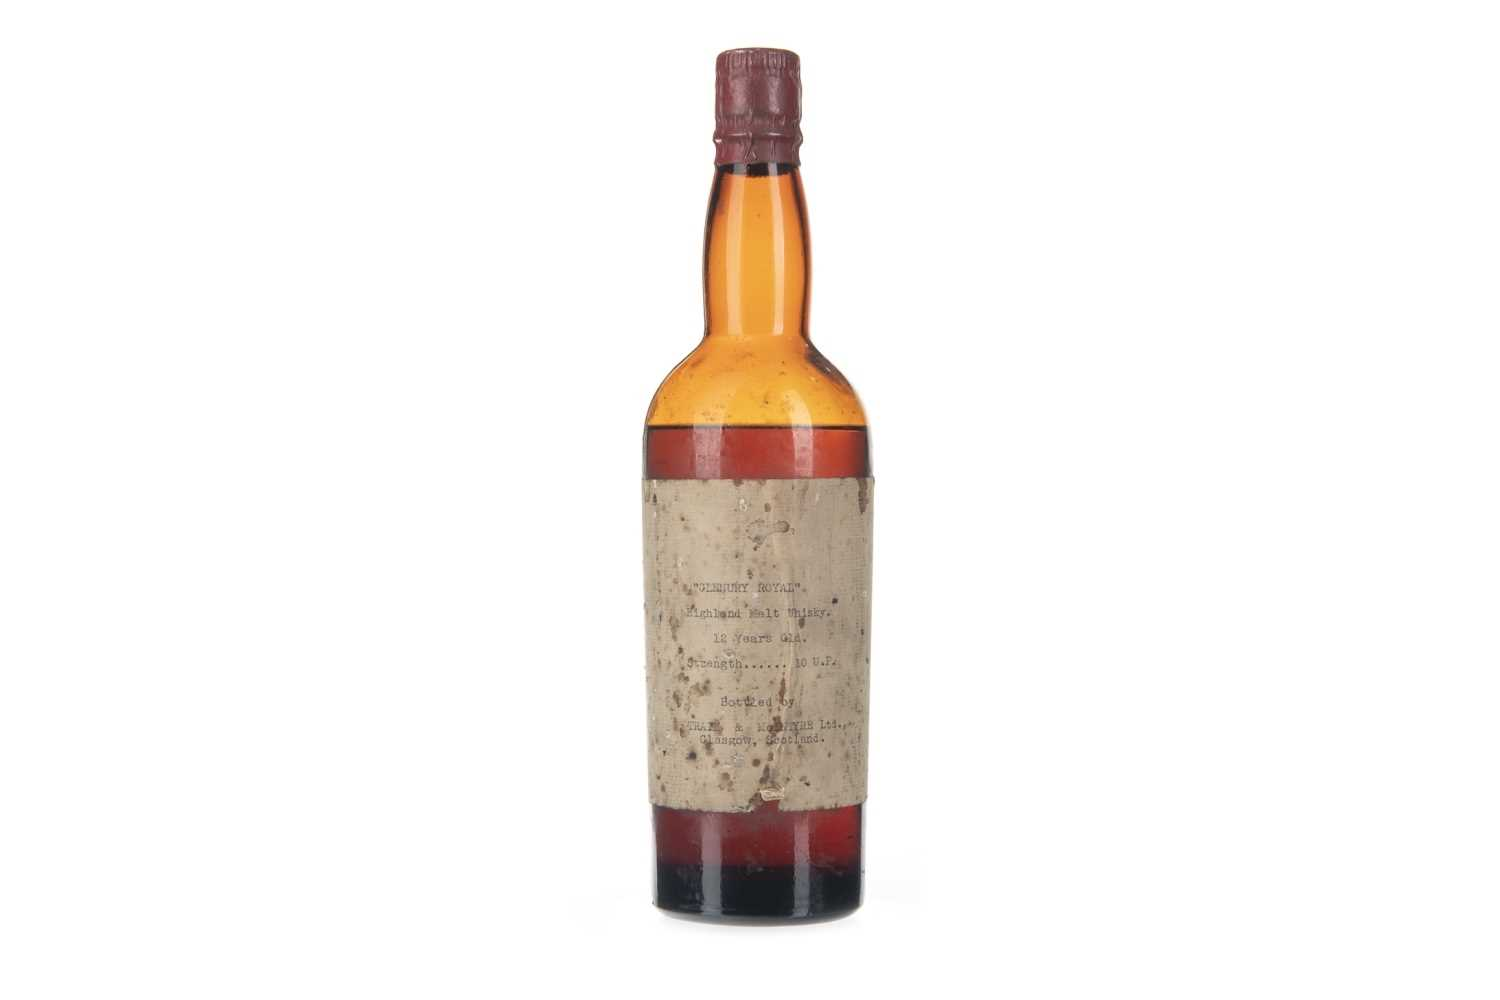 Lot 24-GLENURY ROYAL 12 YEARS OLD TRAIN & MCINTYRE BOTTLING